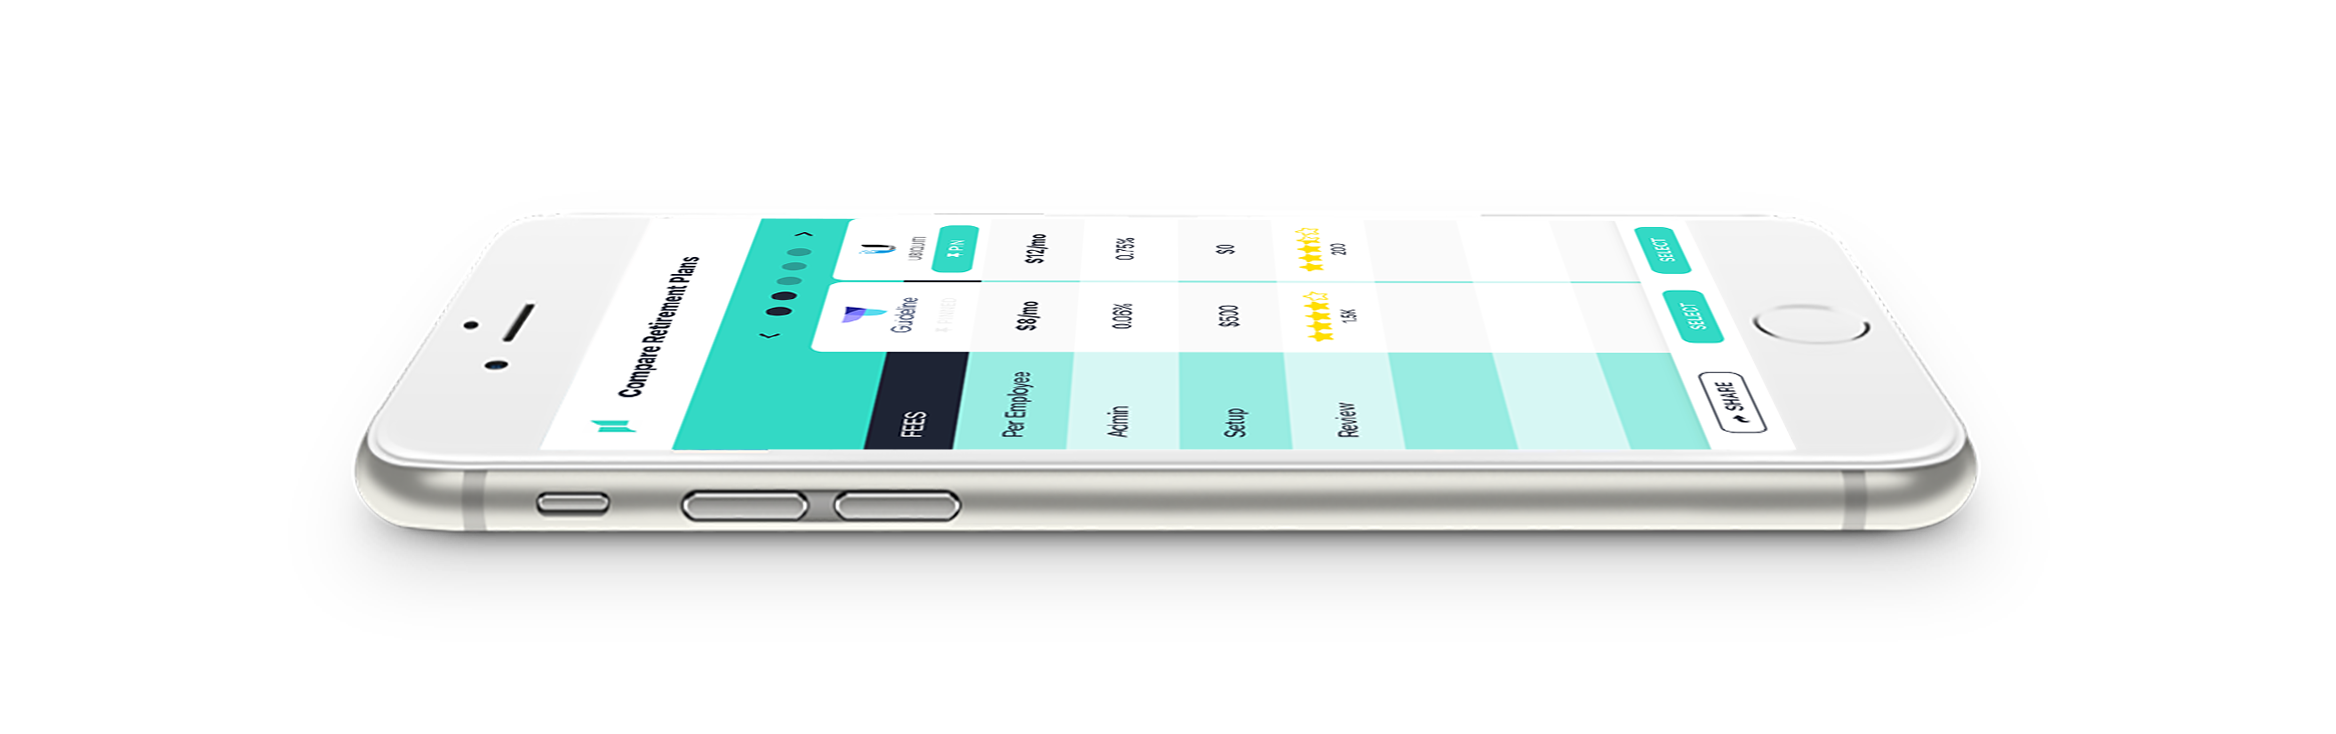 Mobile User Interface Comparison by UX Consultant Nate Chen